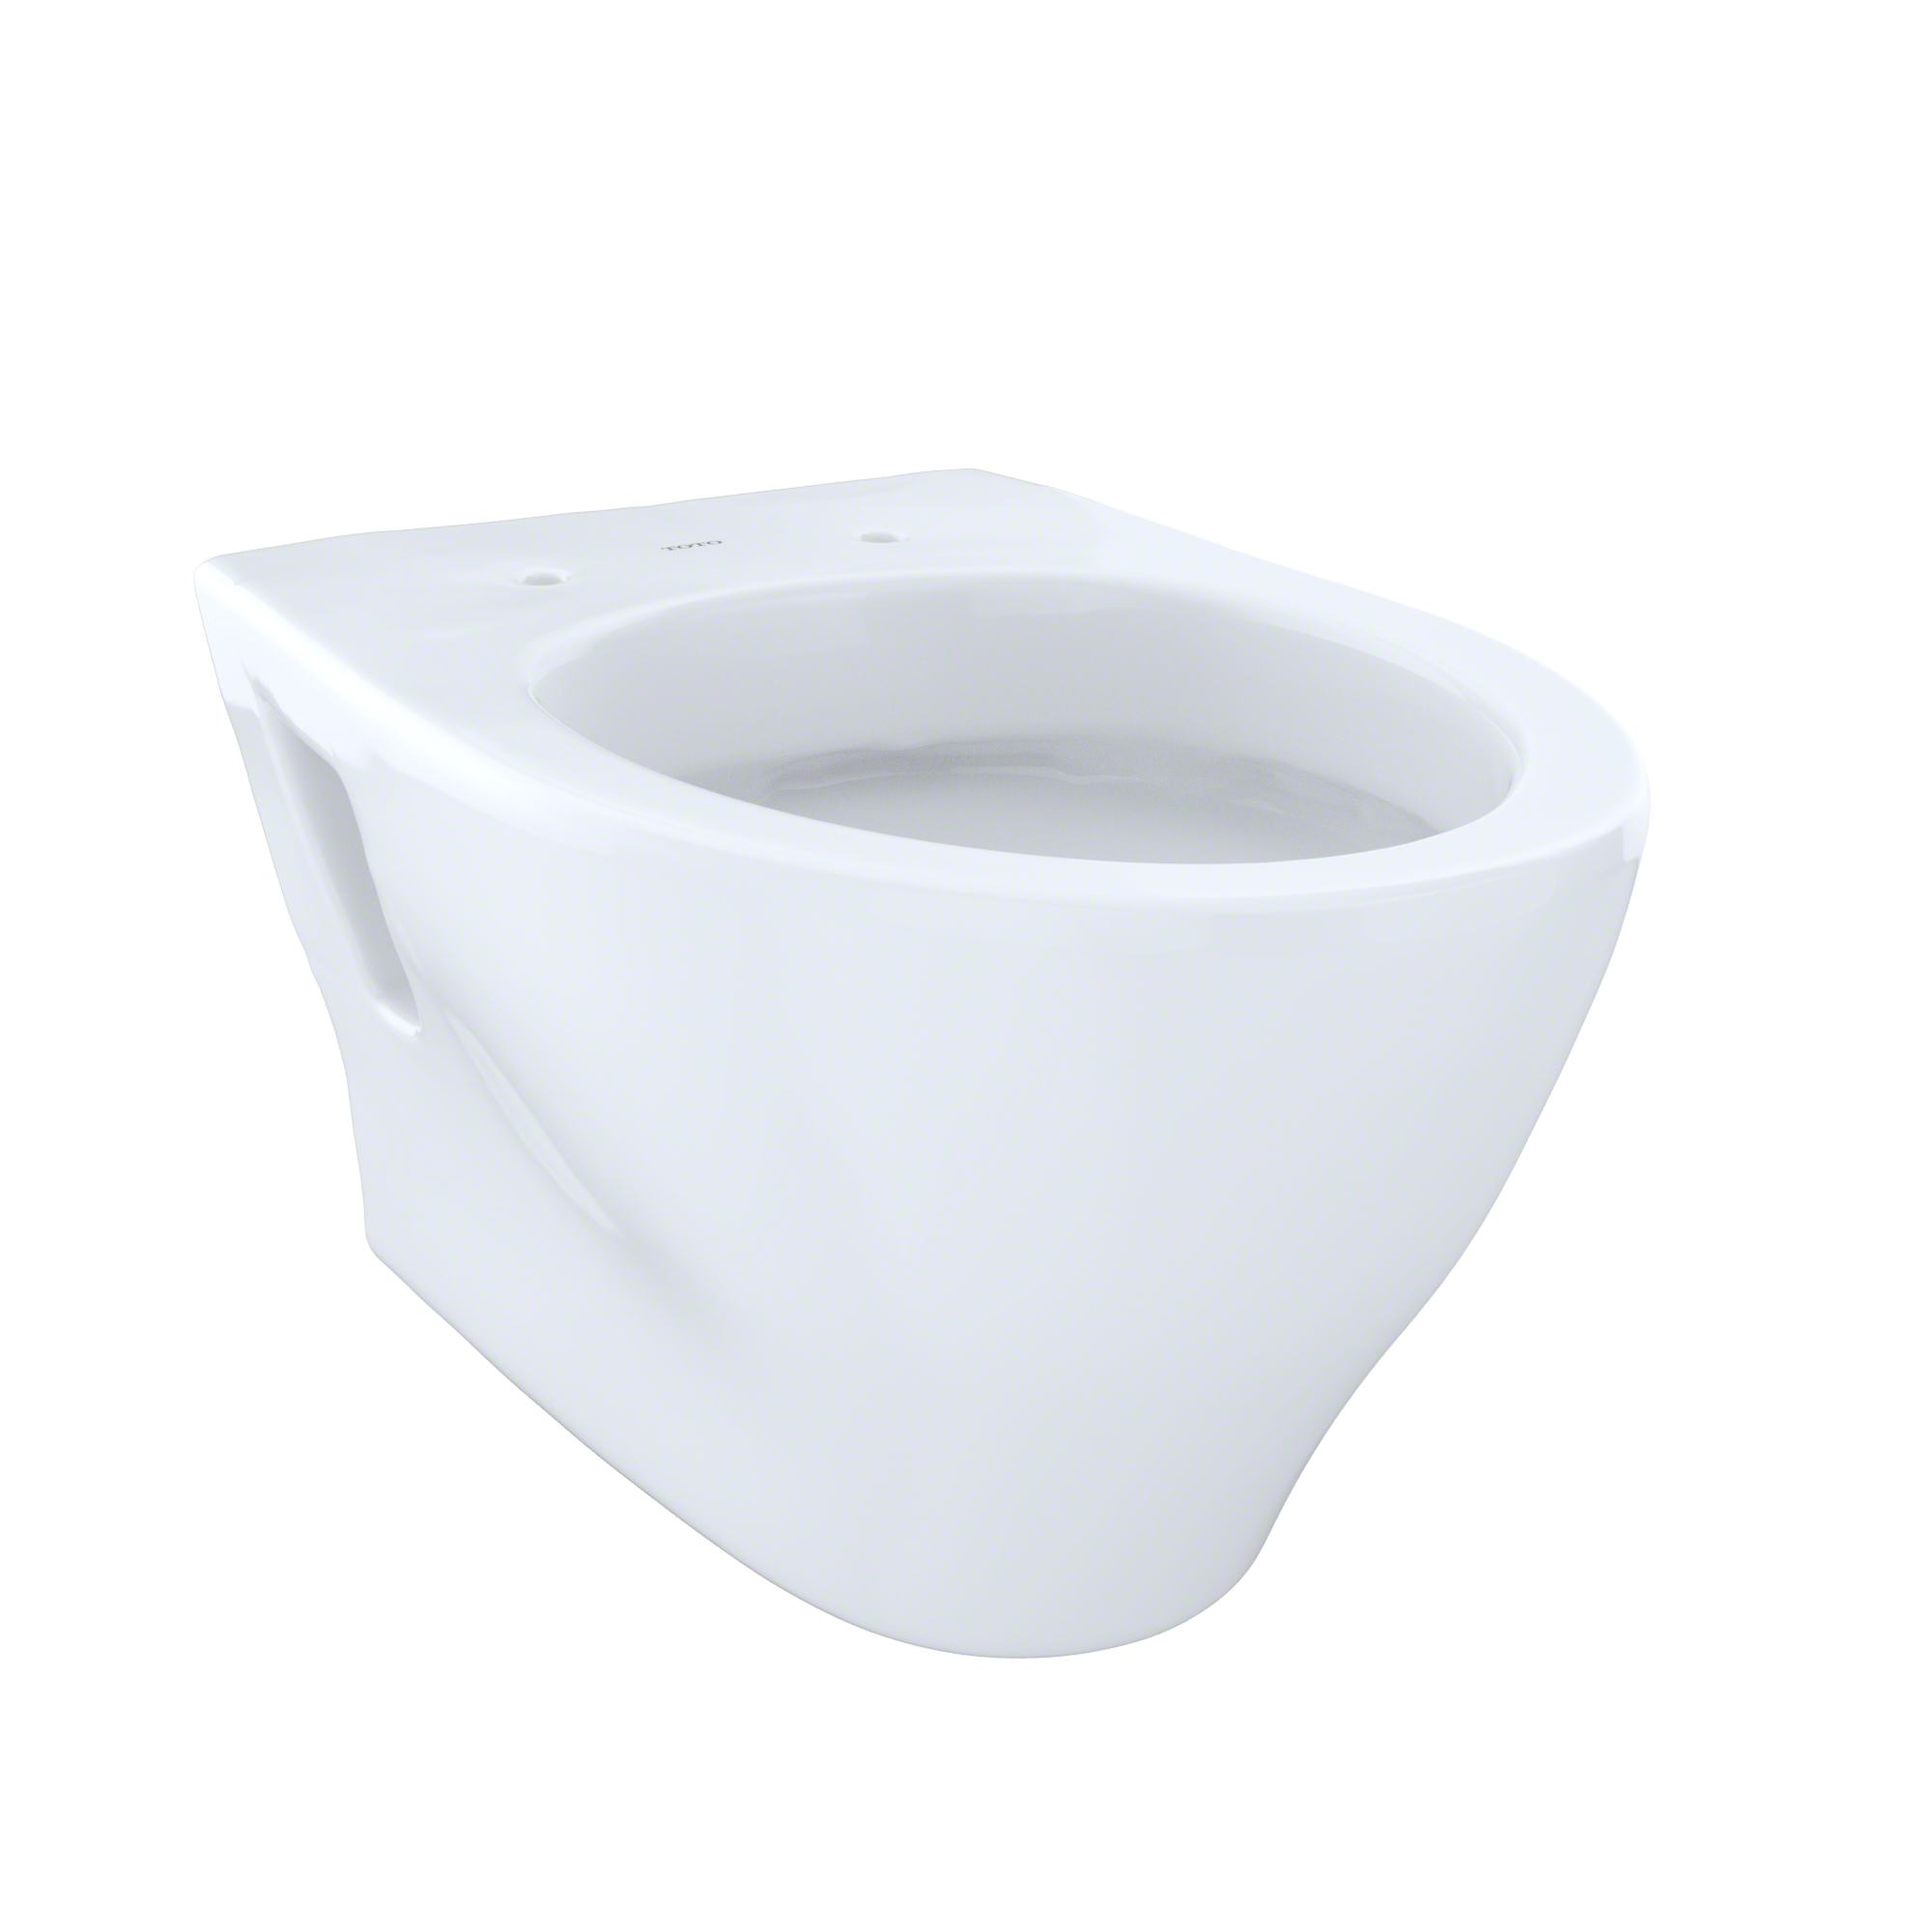 Toilets and Bidets - Walmart.com